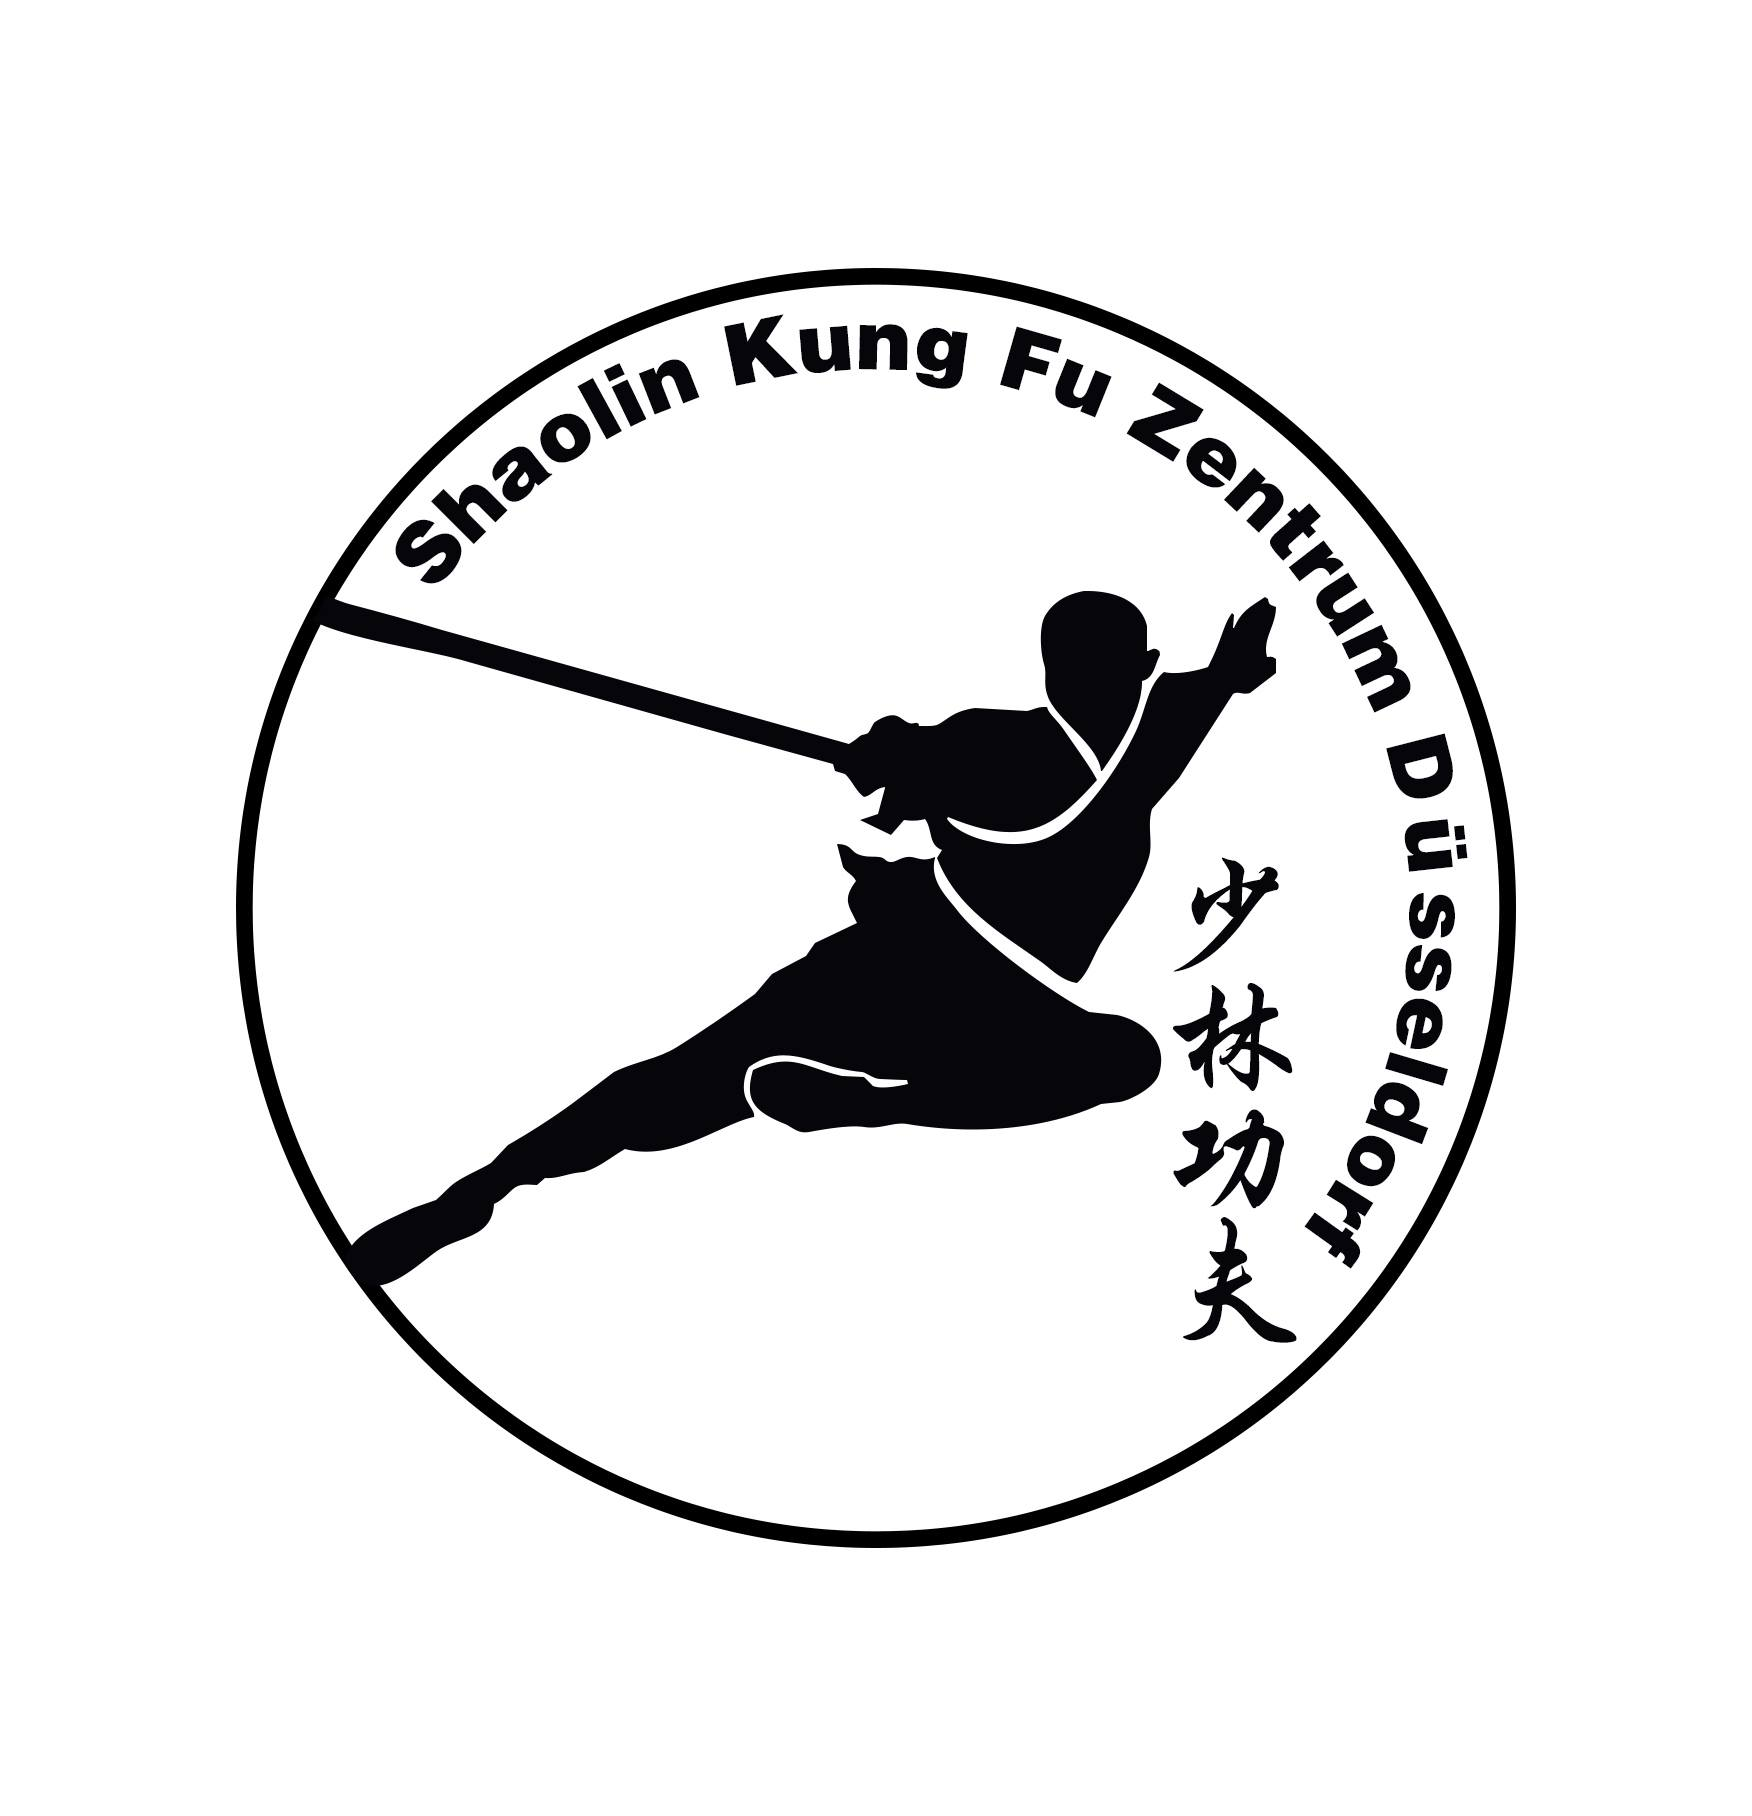 Shaolin Kung Fu Center